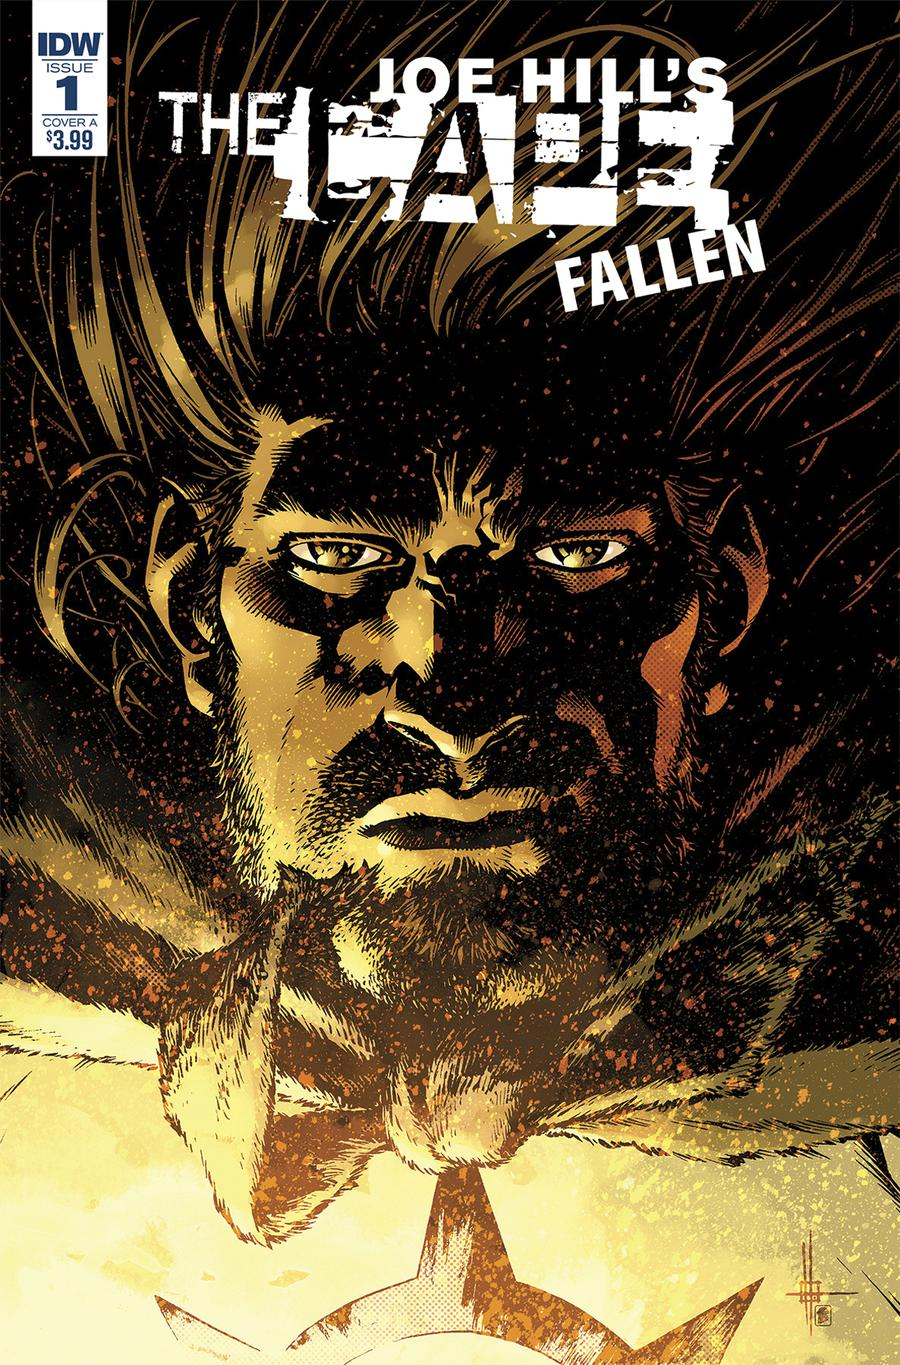 Joe Hills The Cape Fallen #1 Cover A Regular Zach Howard Cover